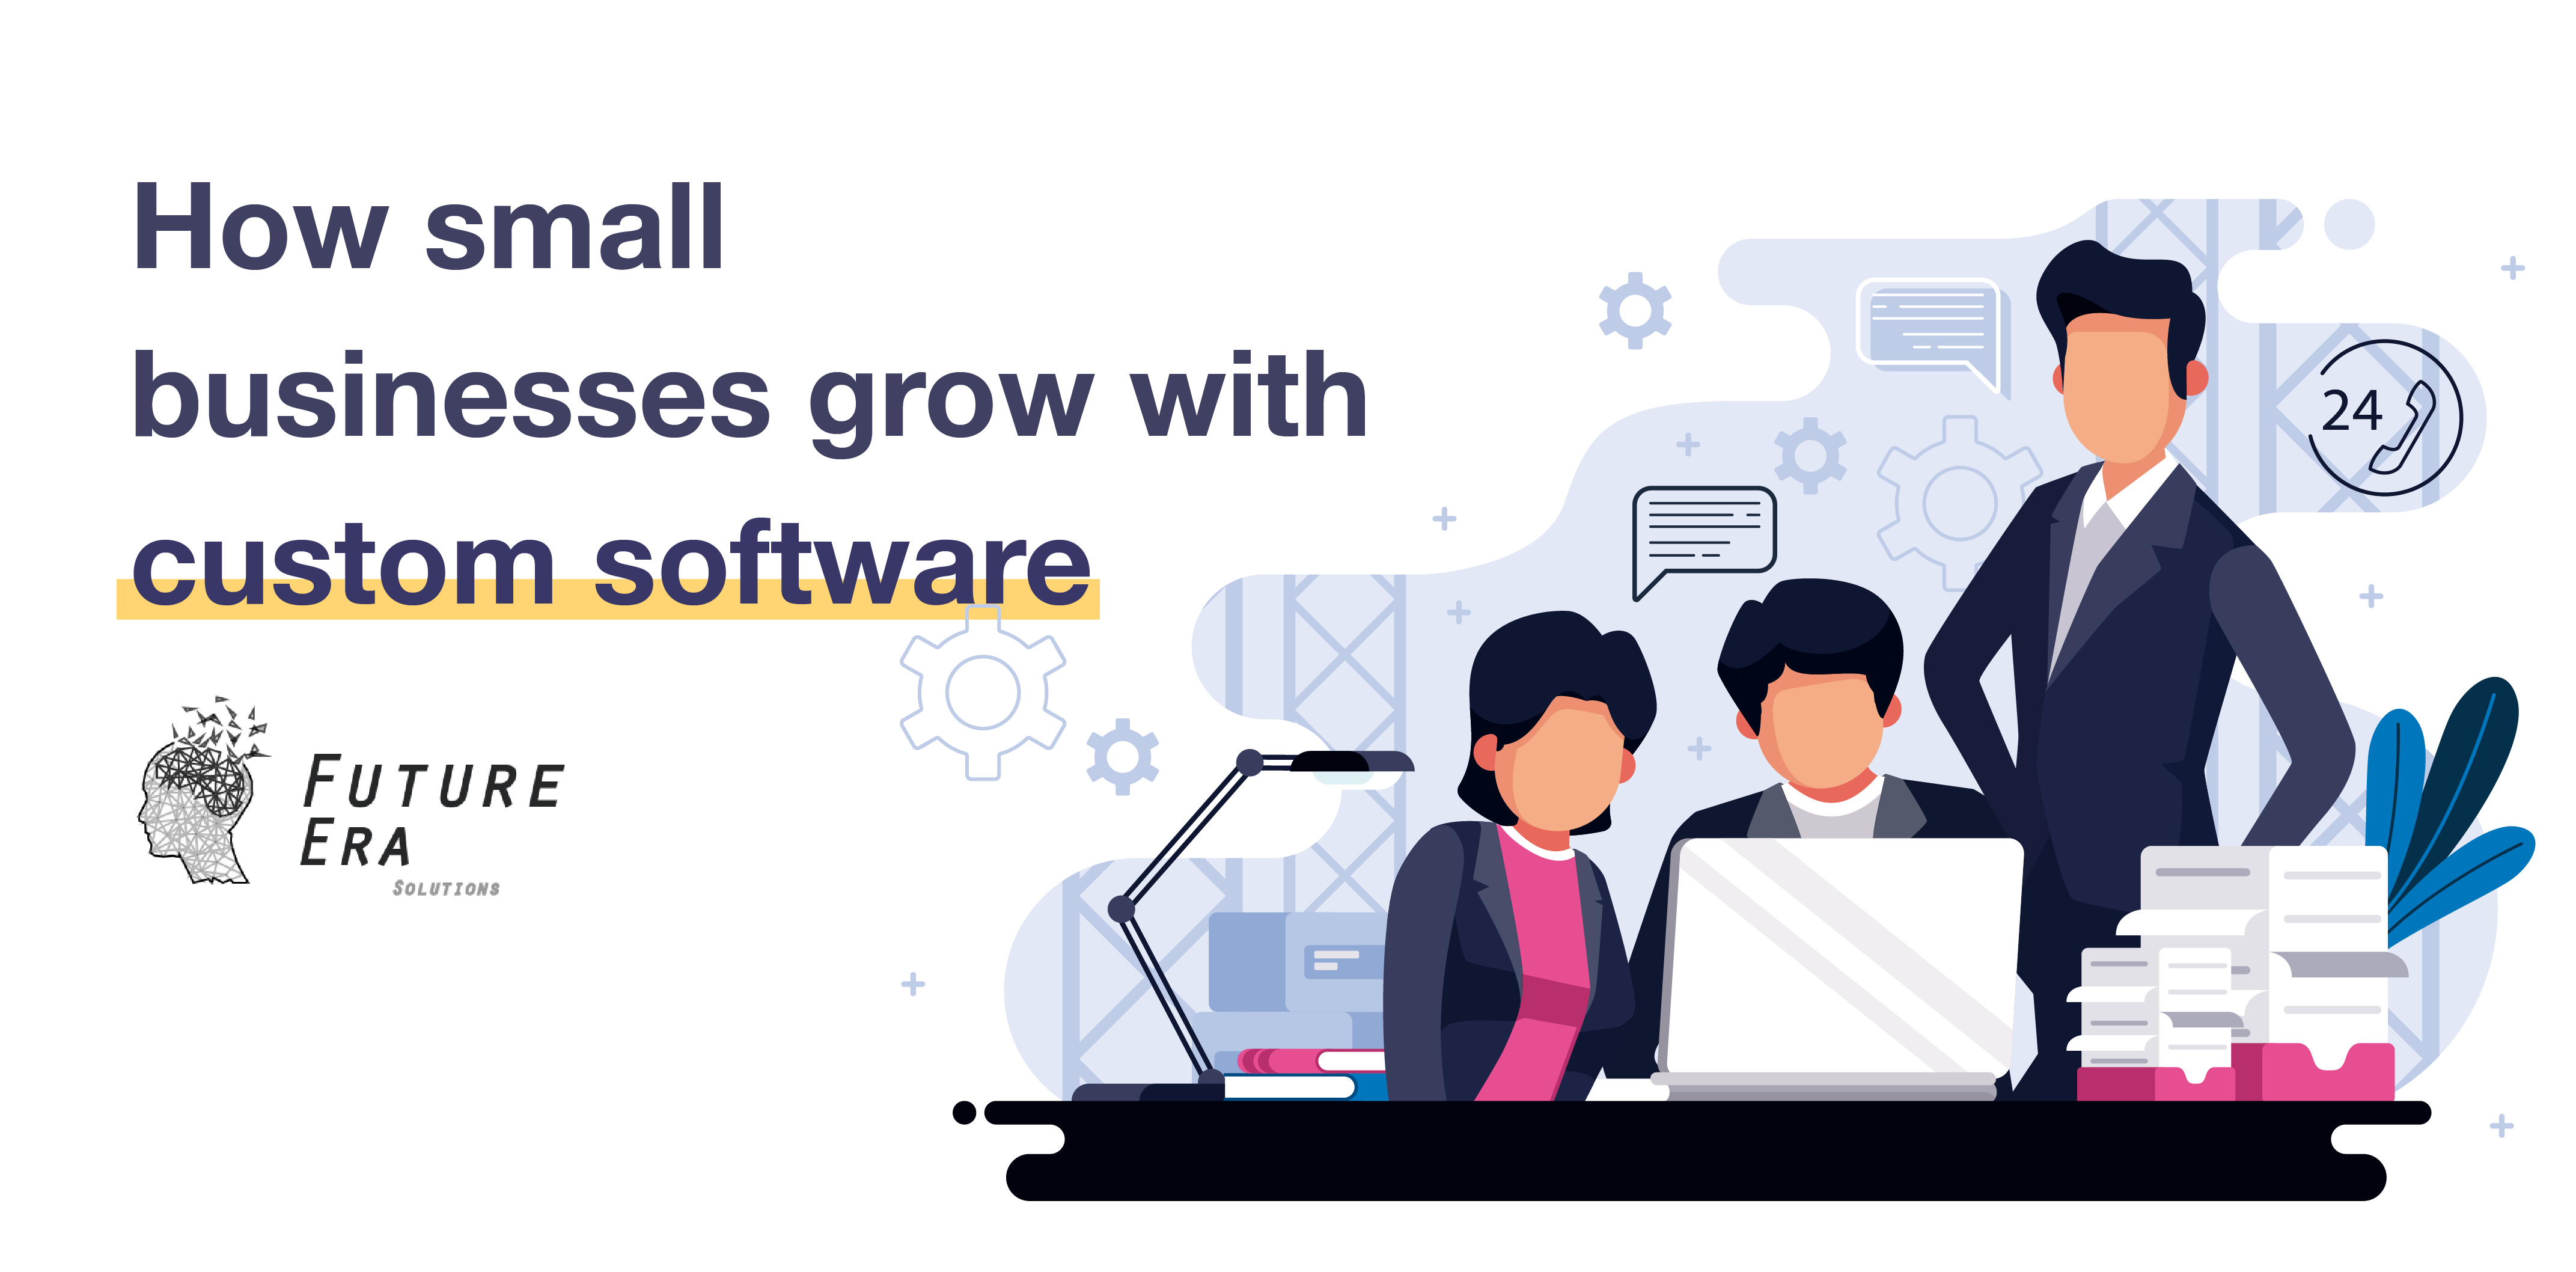 How Small Businesses Grow With Custom Software